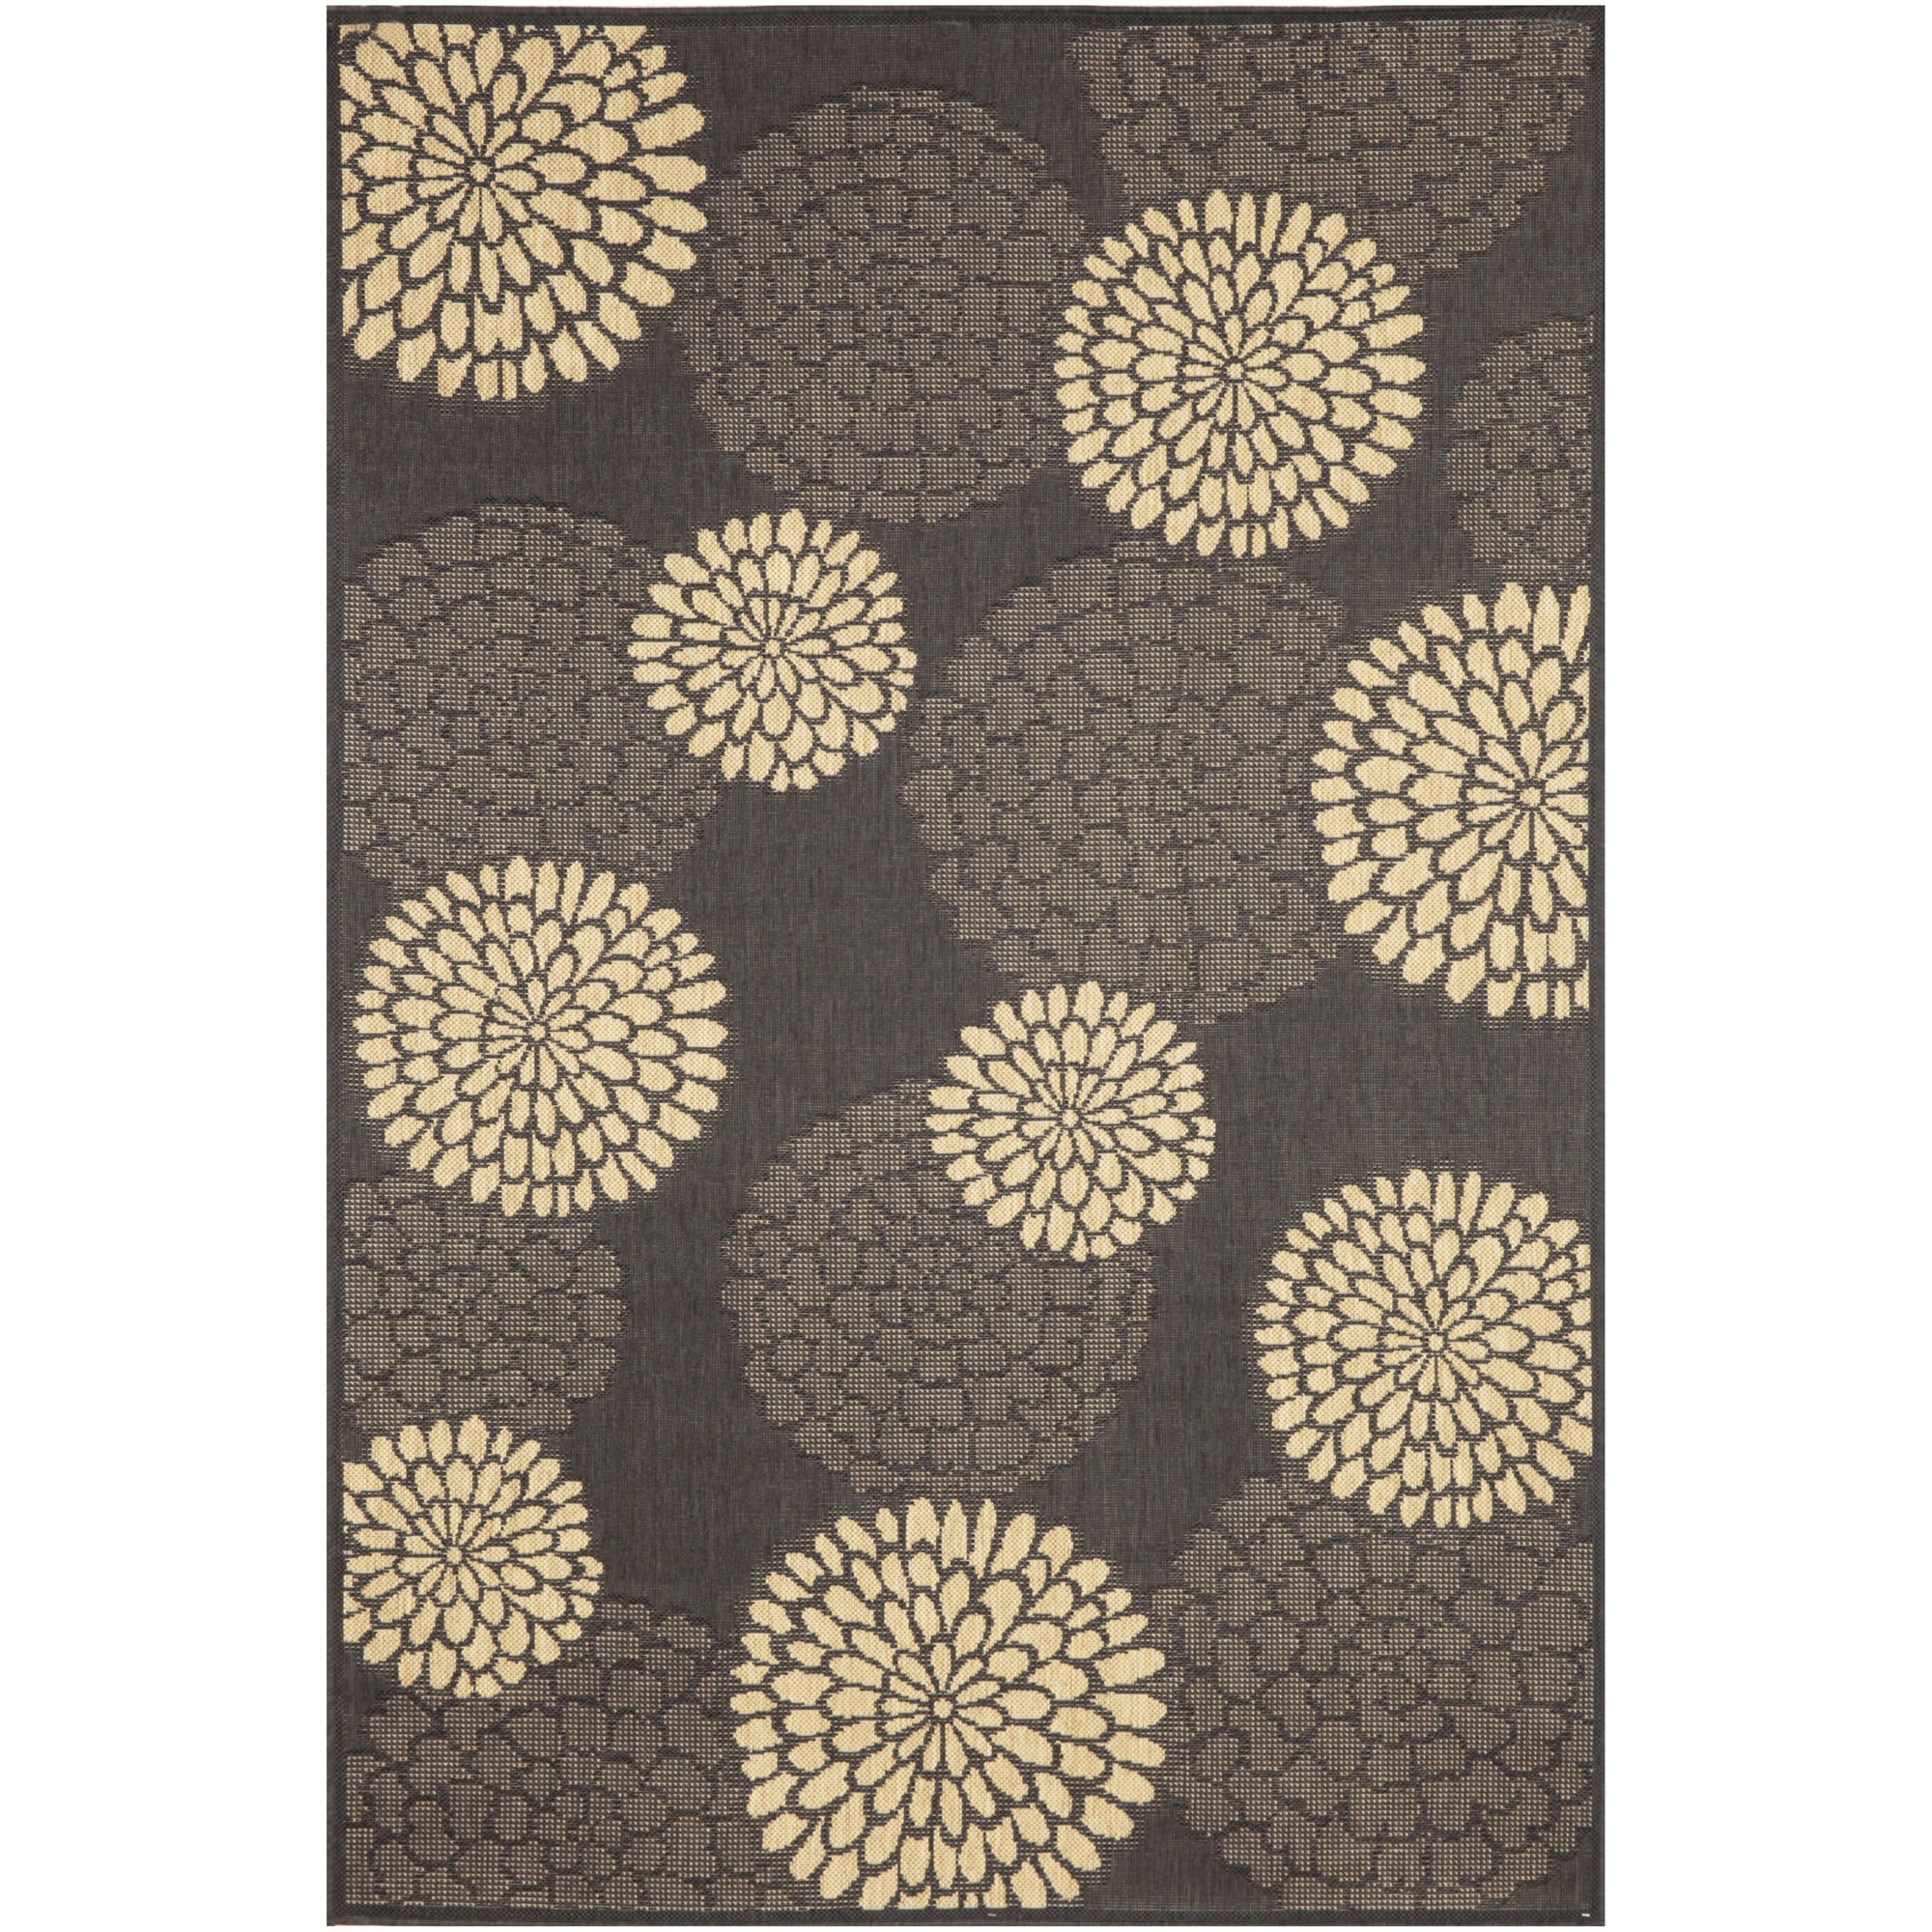 Mums Charcoal 7ft 10in Square Outdoor Rug